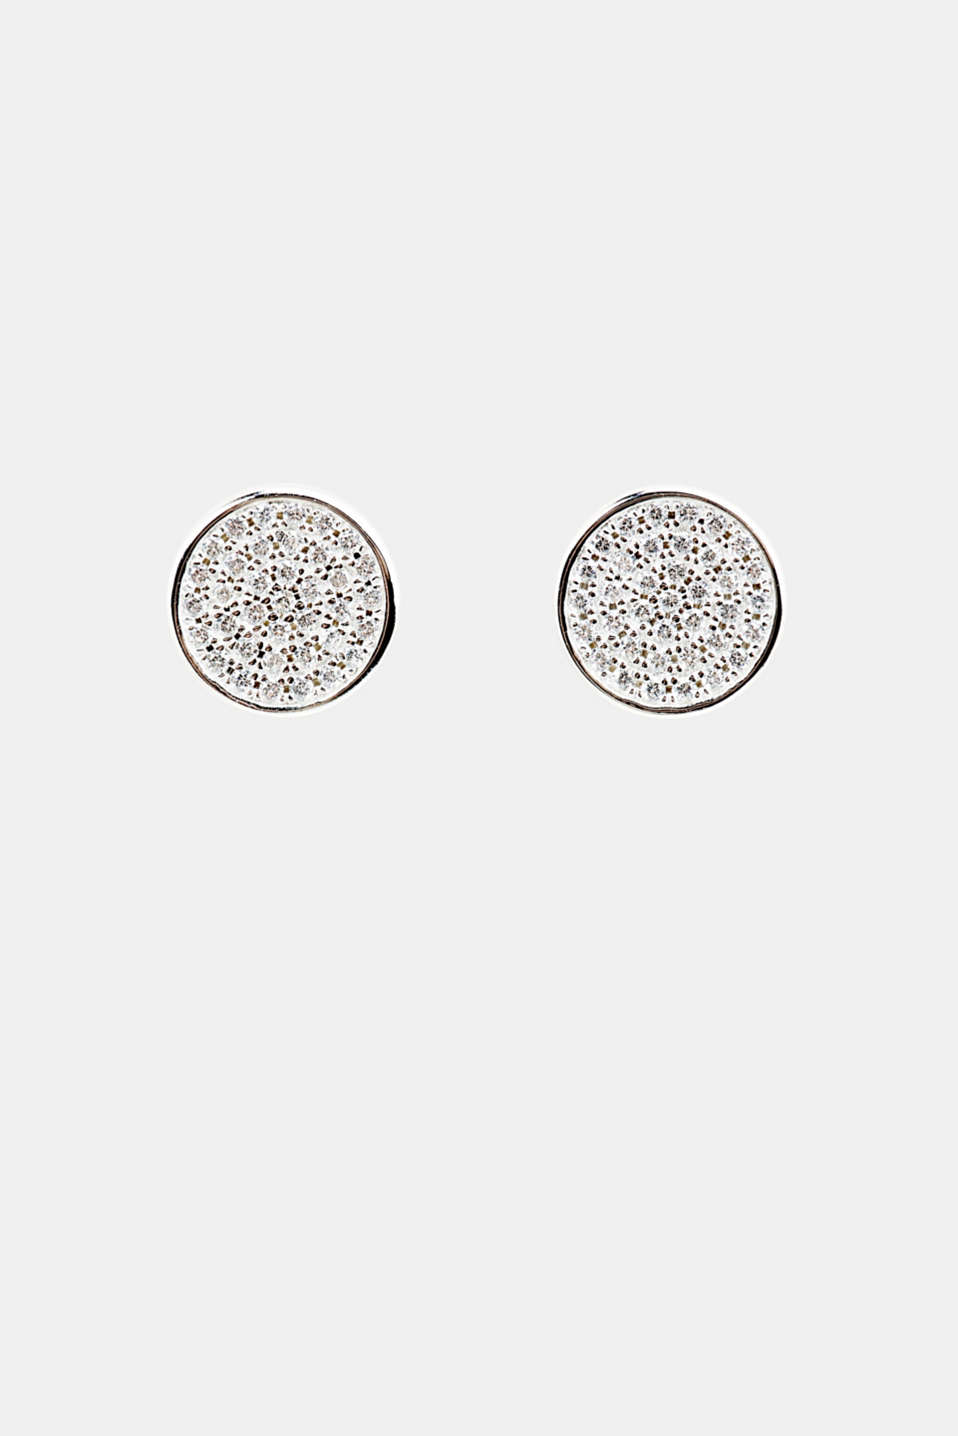 Stud earrings with zirconia, sterling silver, LCSILVER, detail